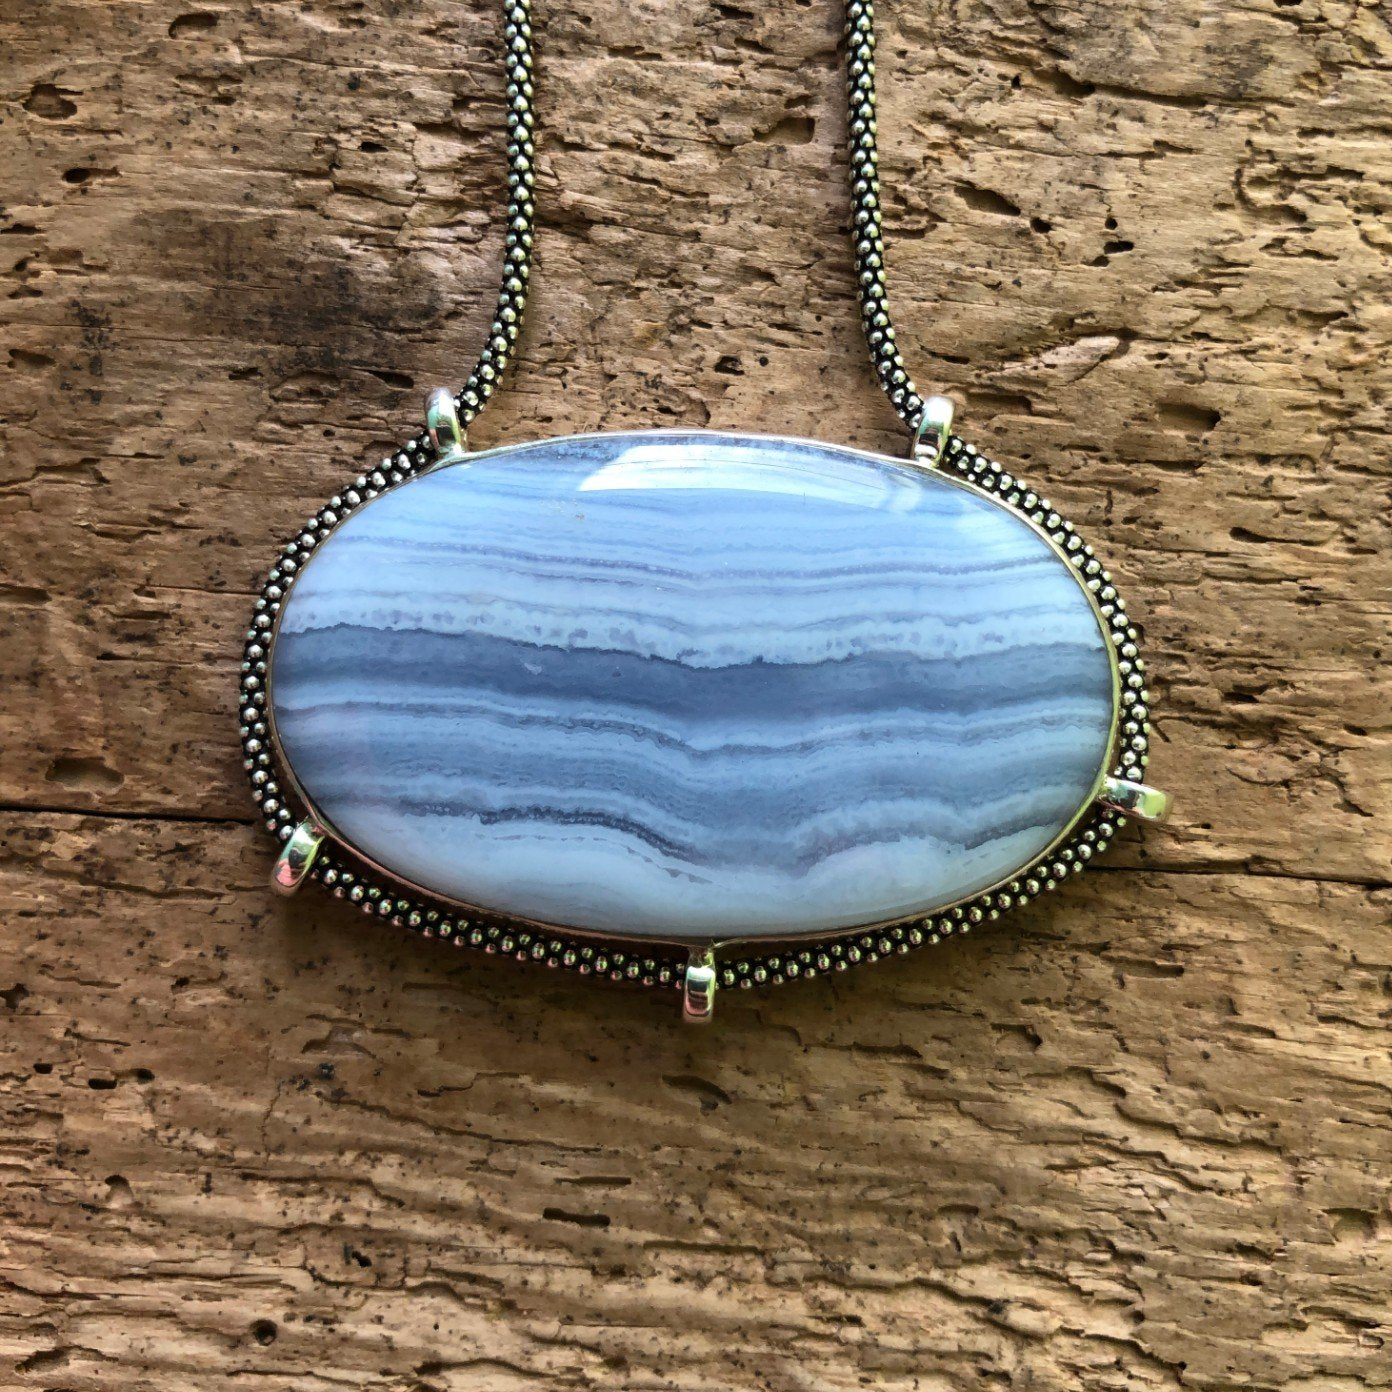 Strikingly good quality horizontally oriented oval Blue Lace Agate Pendant with oxidized sterling silver chain on driftwood background